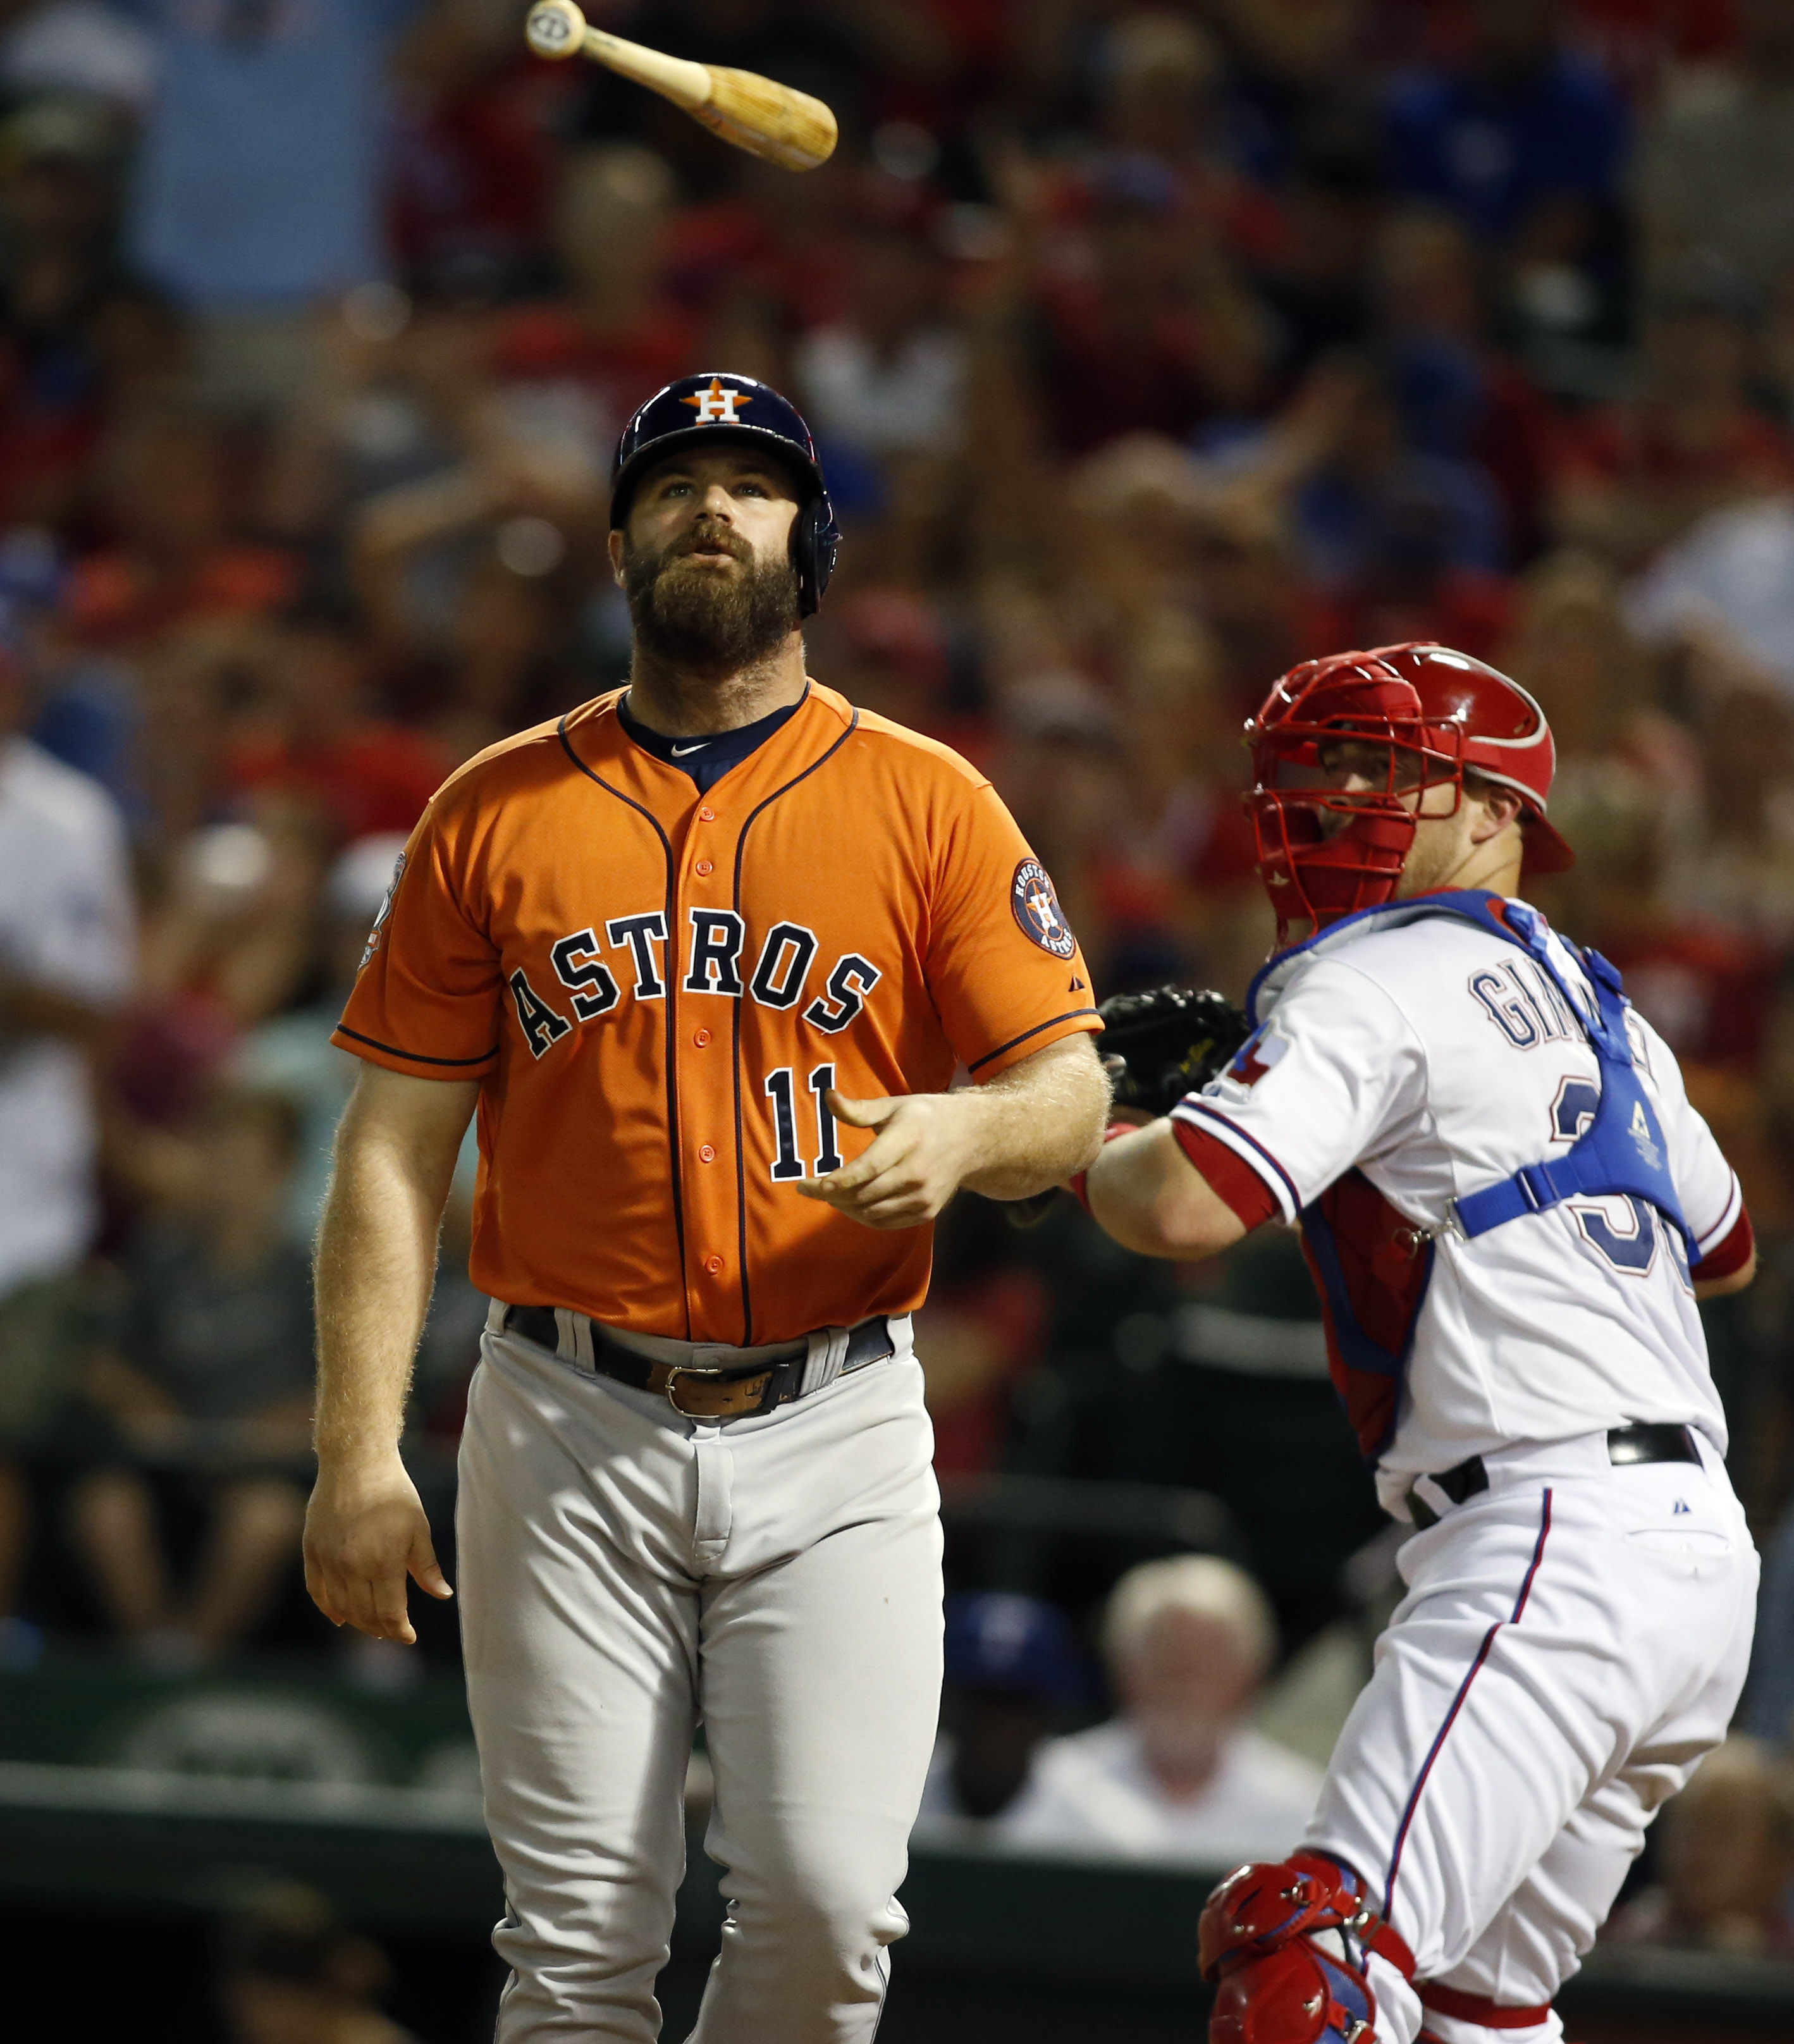 Evan Gattis reacts to striking out against the Rangers